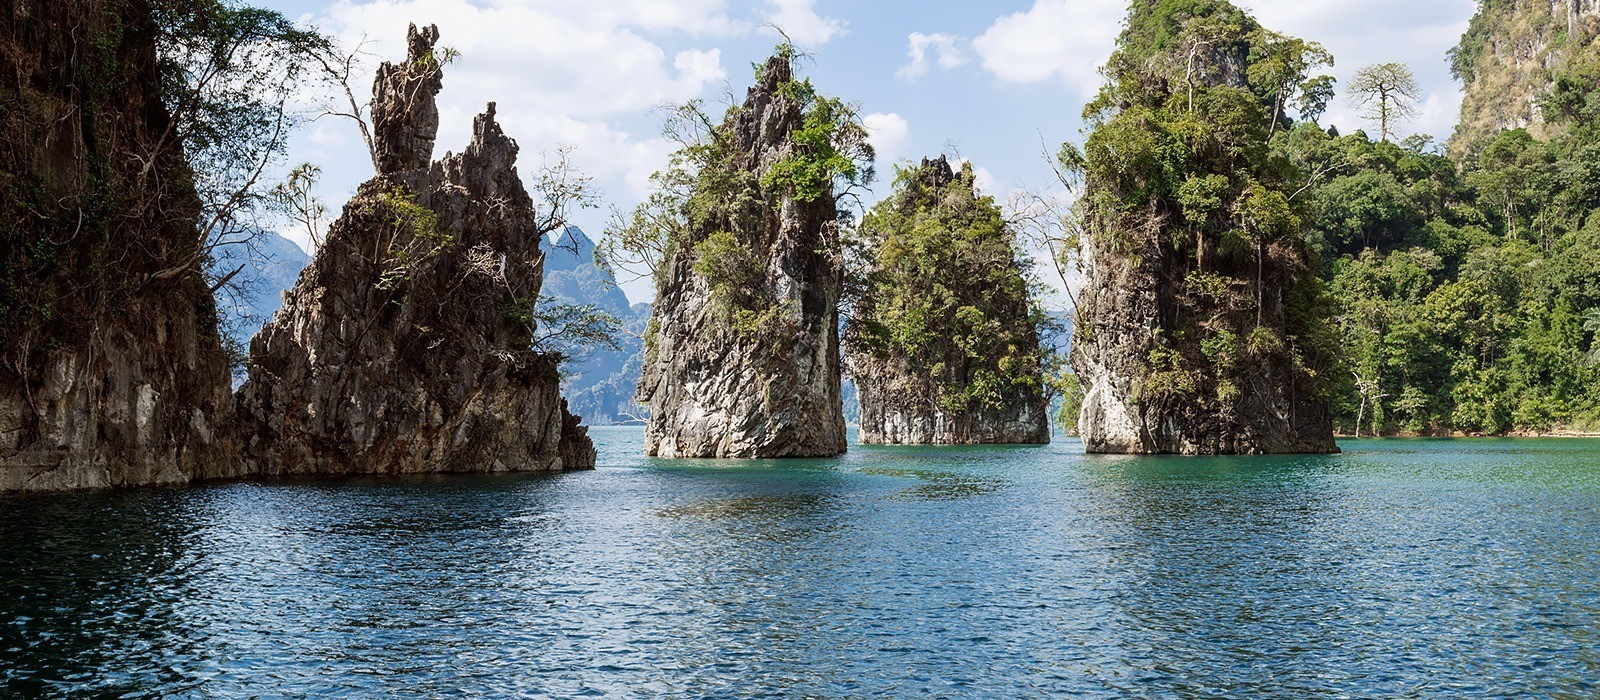 Top 10 Wildlife Reserves in the world, khao sok wildlife reserves